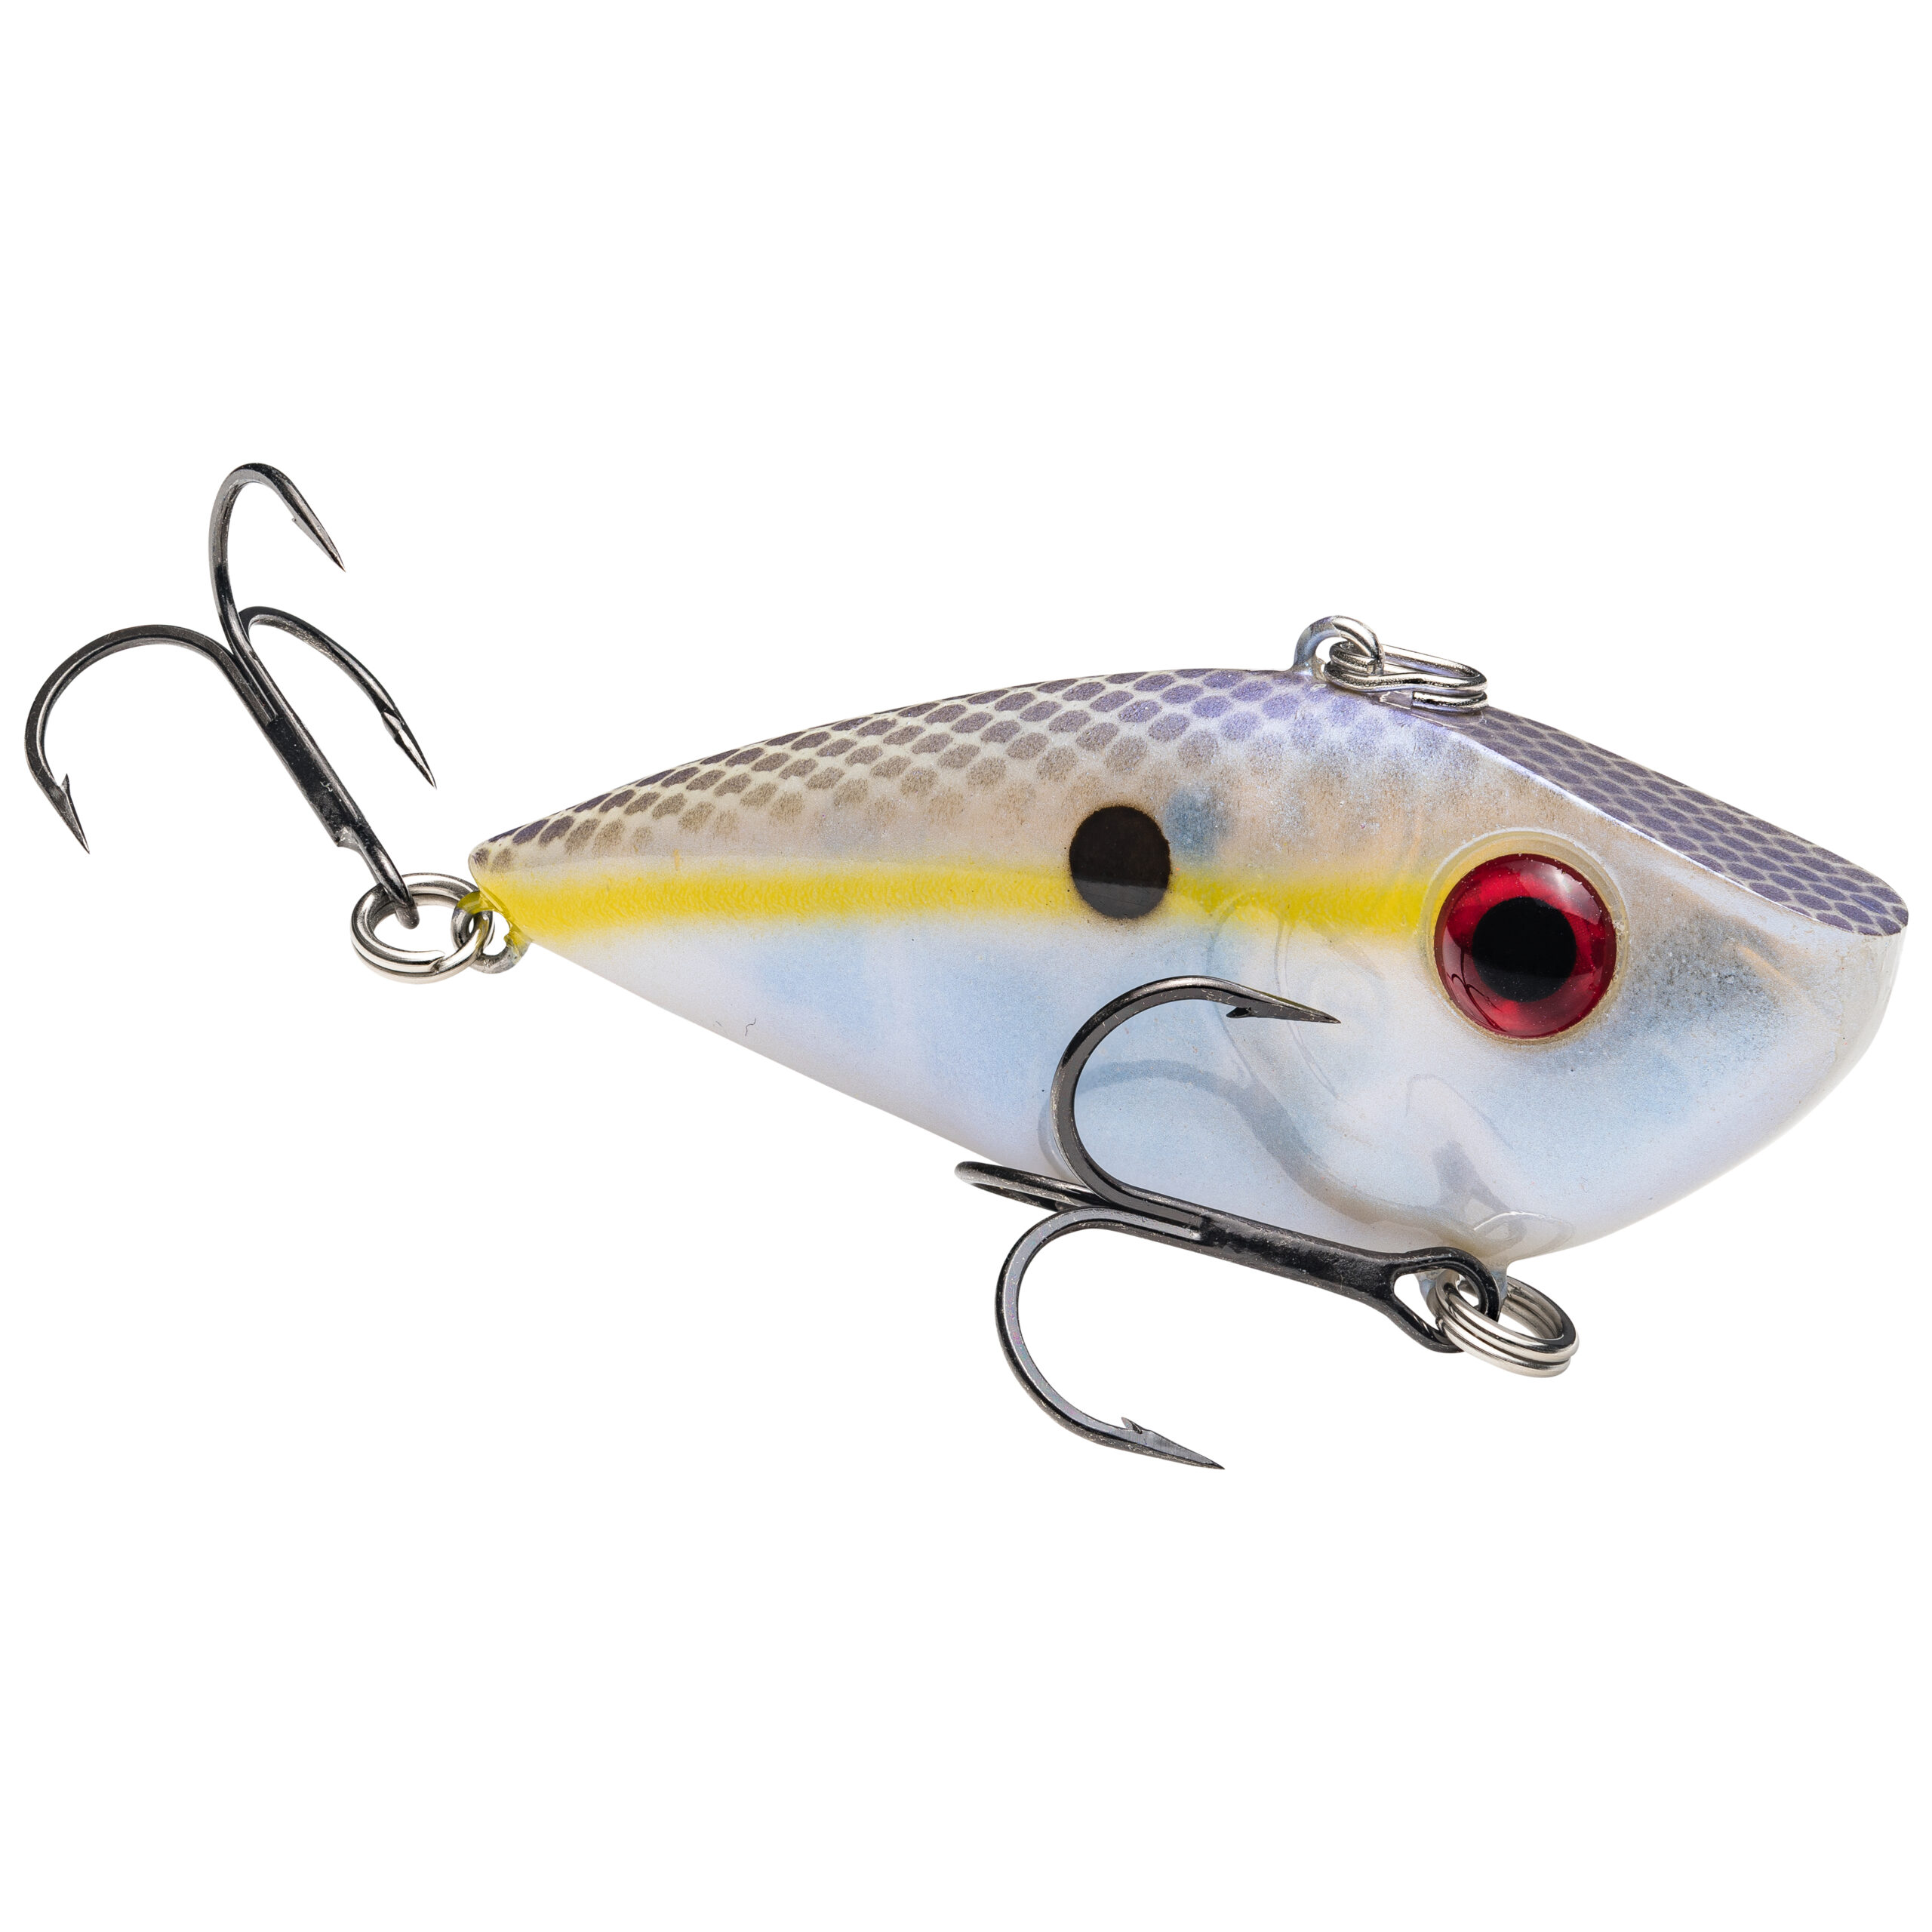 Strike King Lures – Crankbaits – Lipless Rattle Trap – Red Eyed Shad - 1/4oz - REYESD14-598 - Chartreuse Shad